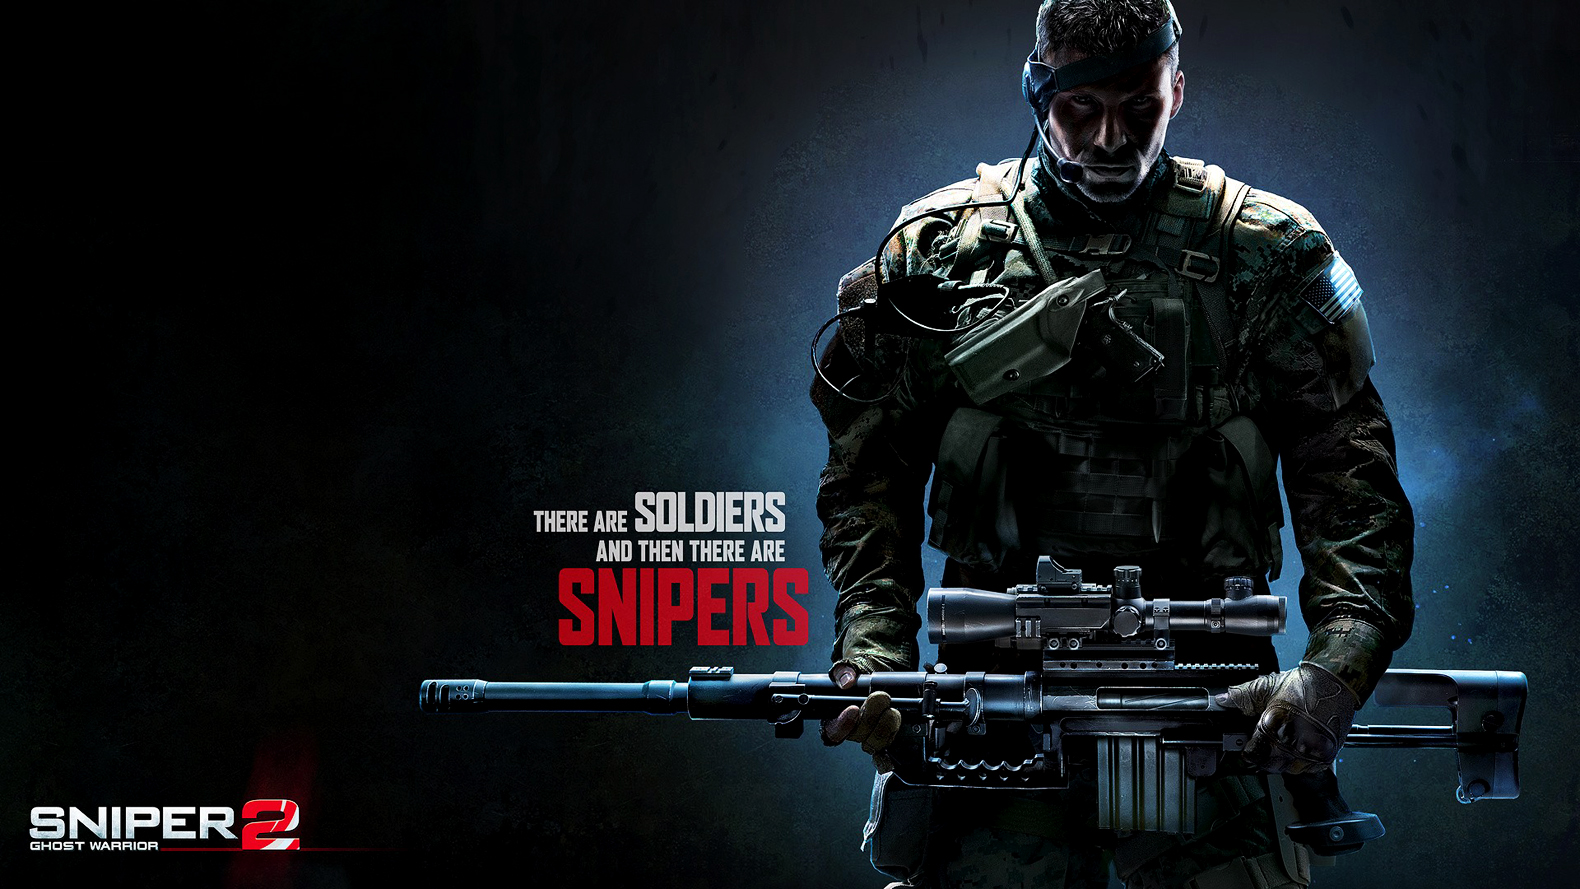 15 Best Sniper Wallpapers from Video Gameswallpapers screensavers 1580x889